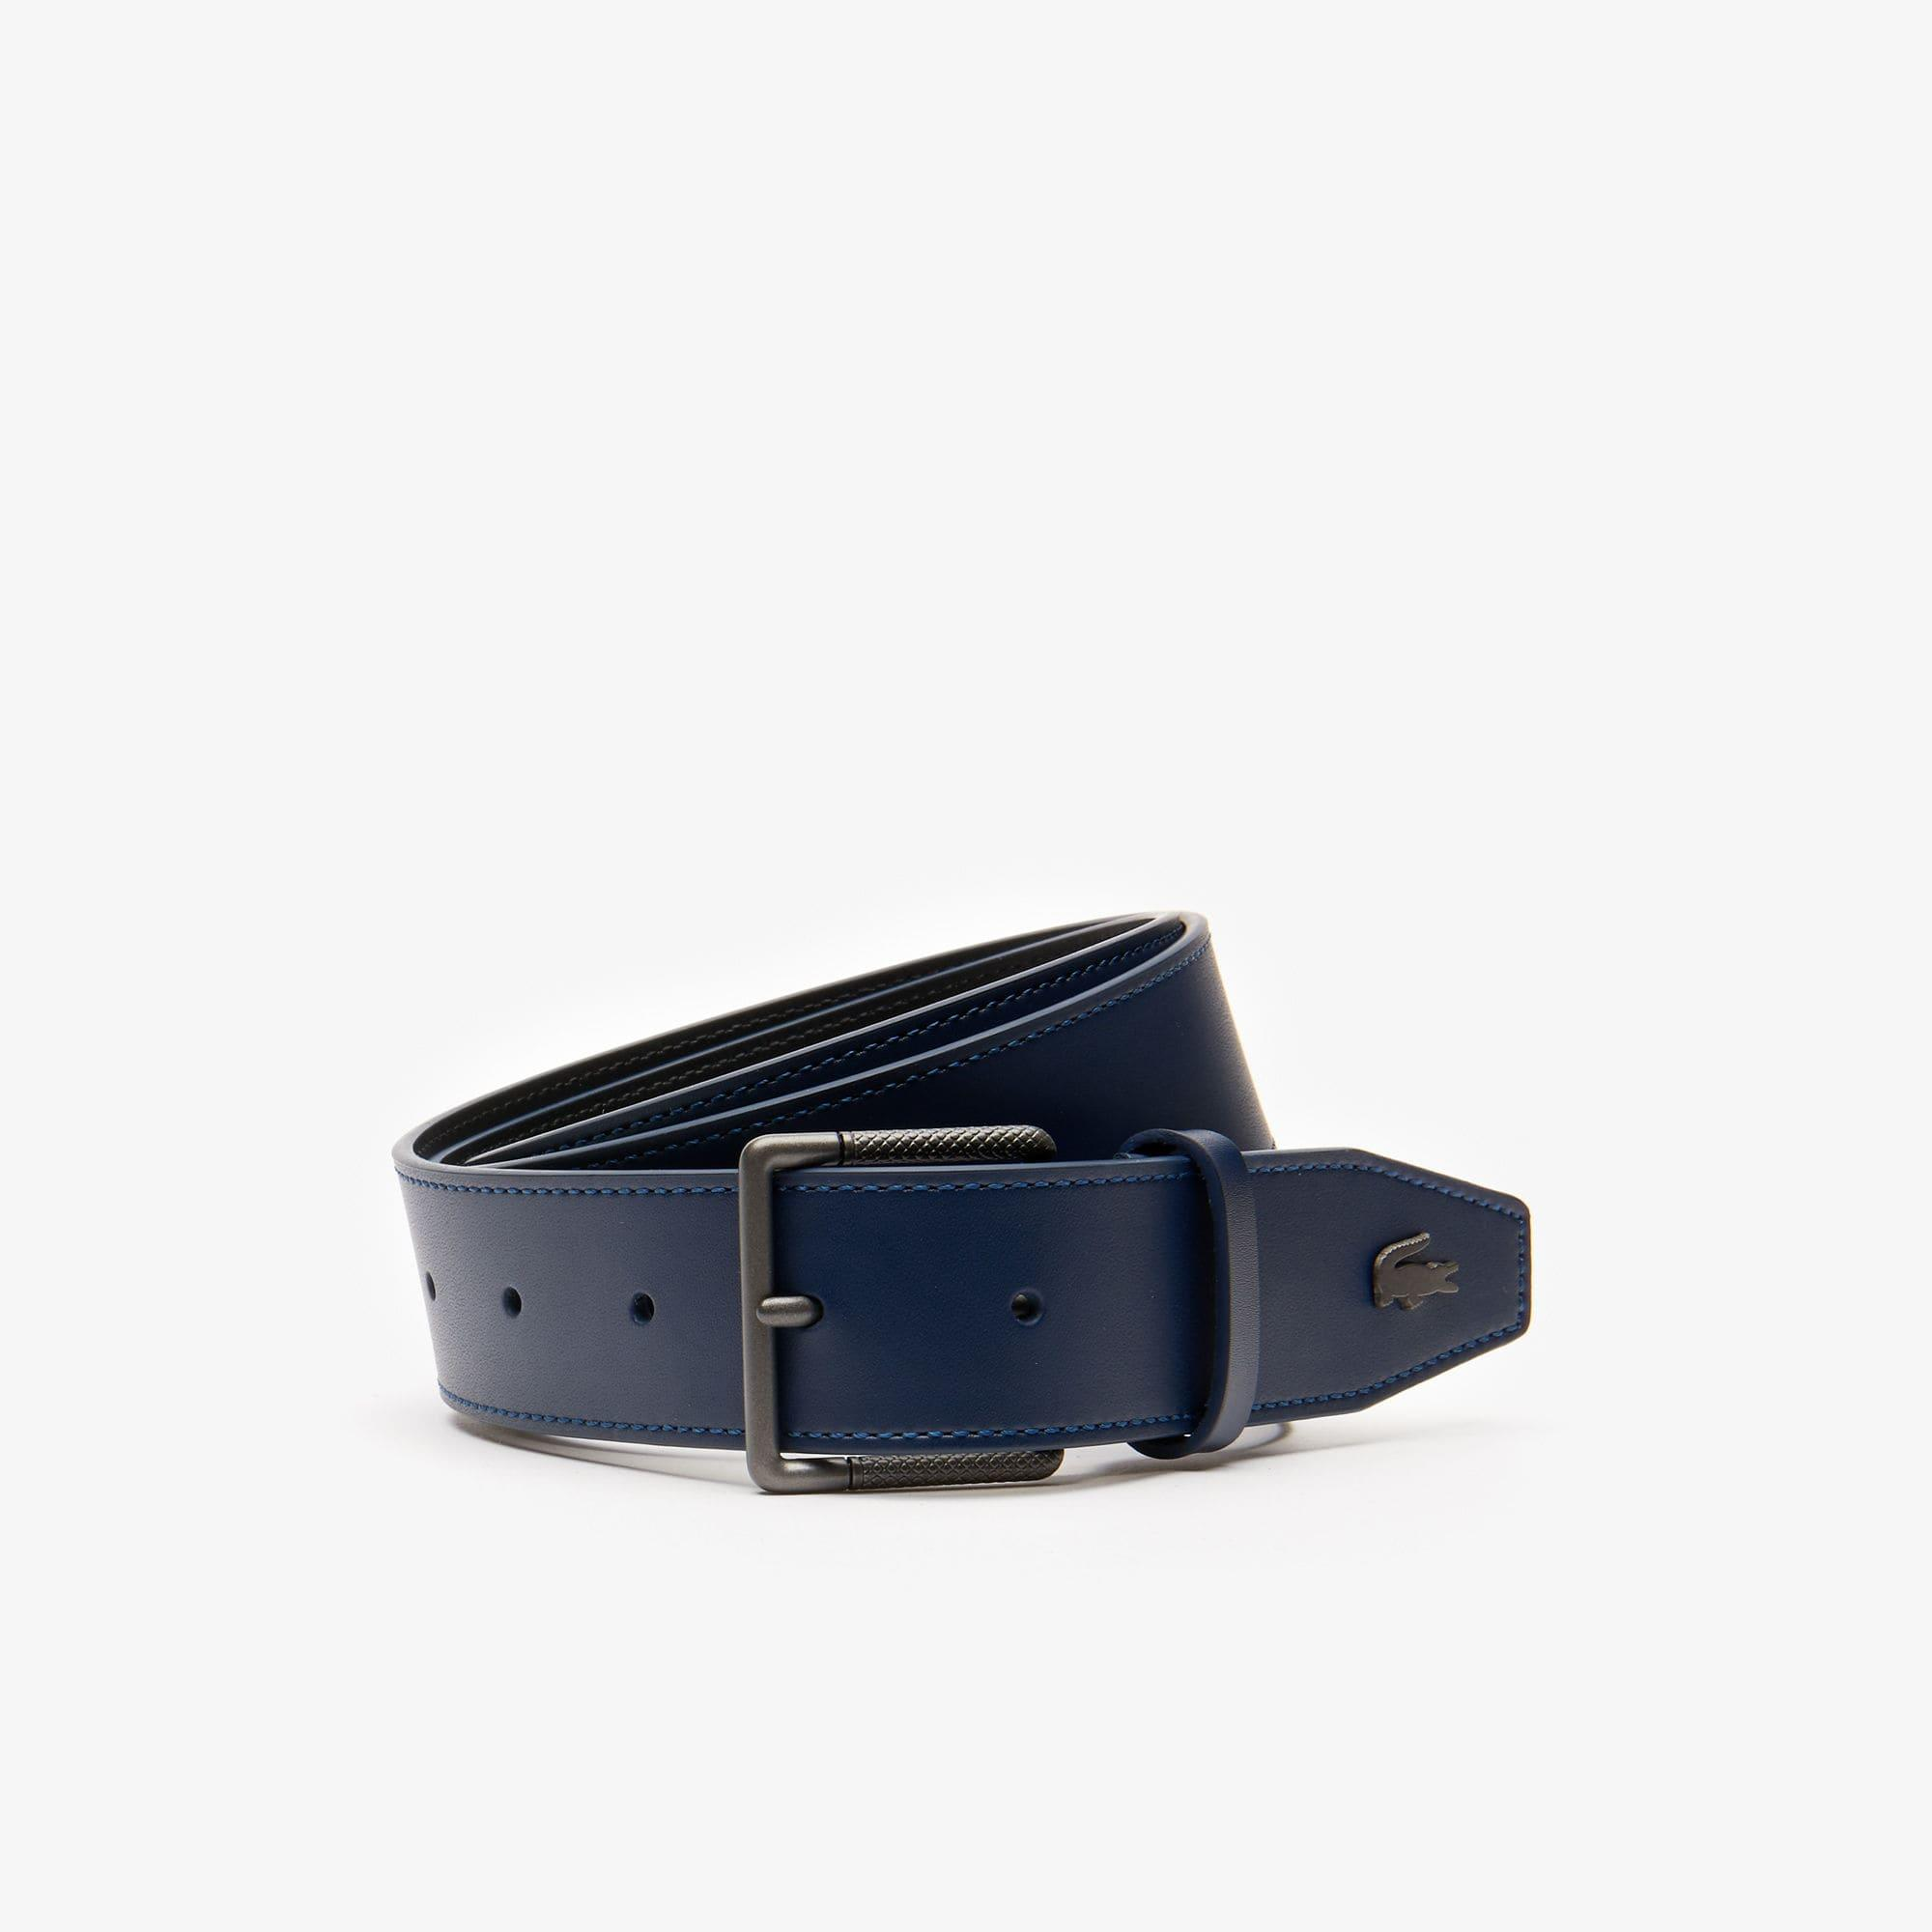 39ad31c32a Lyst - Lacoste Engraved Buckle Leather Belt in Blue for Men